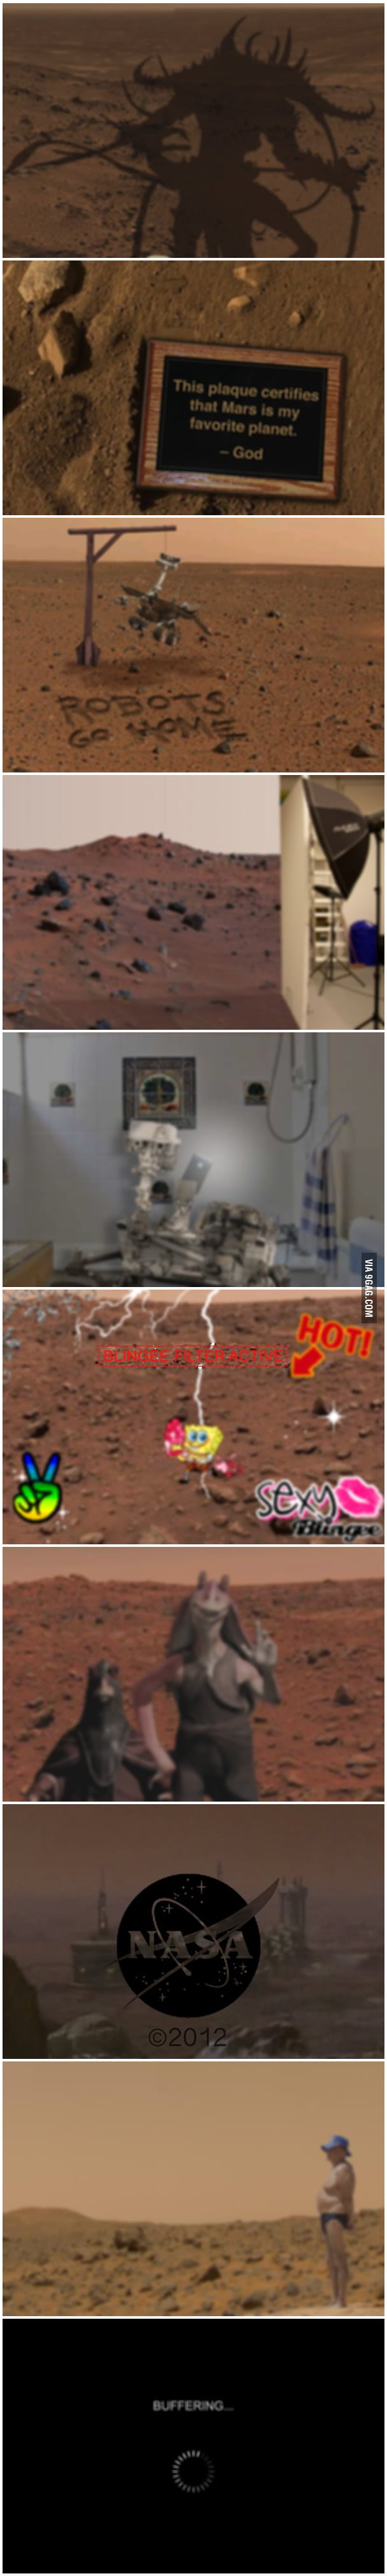 The Worst Pictures the Mars Rover Could Send Back